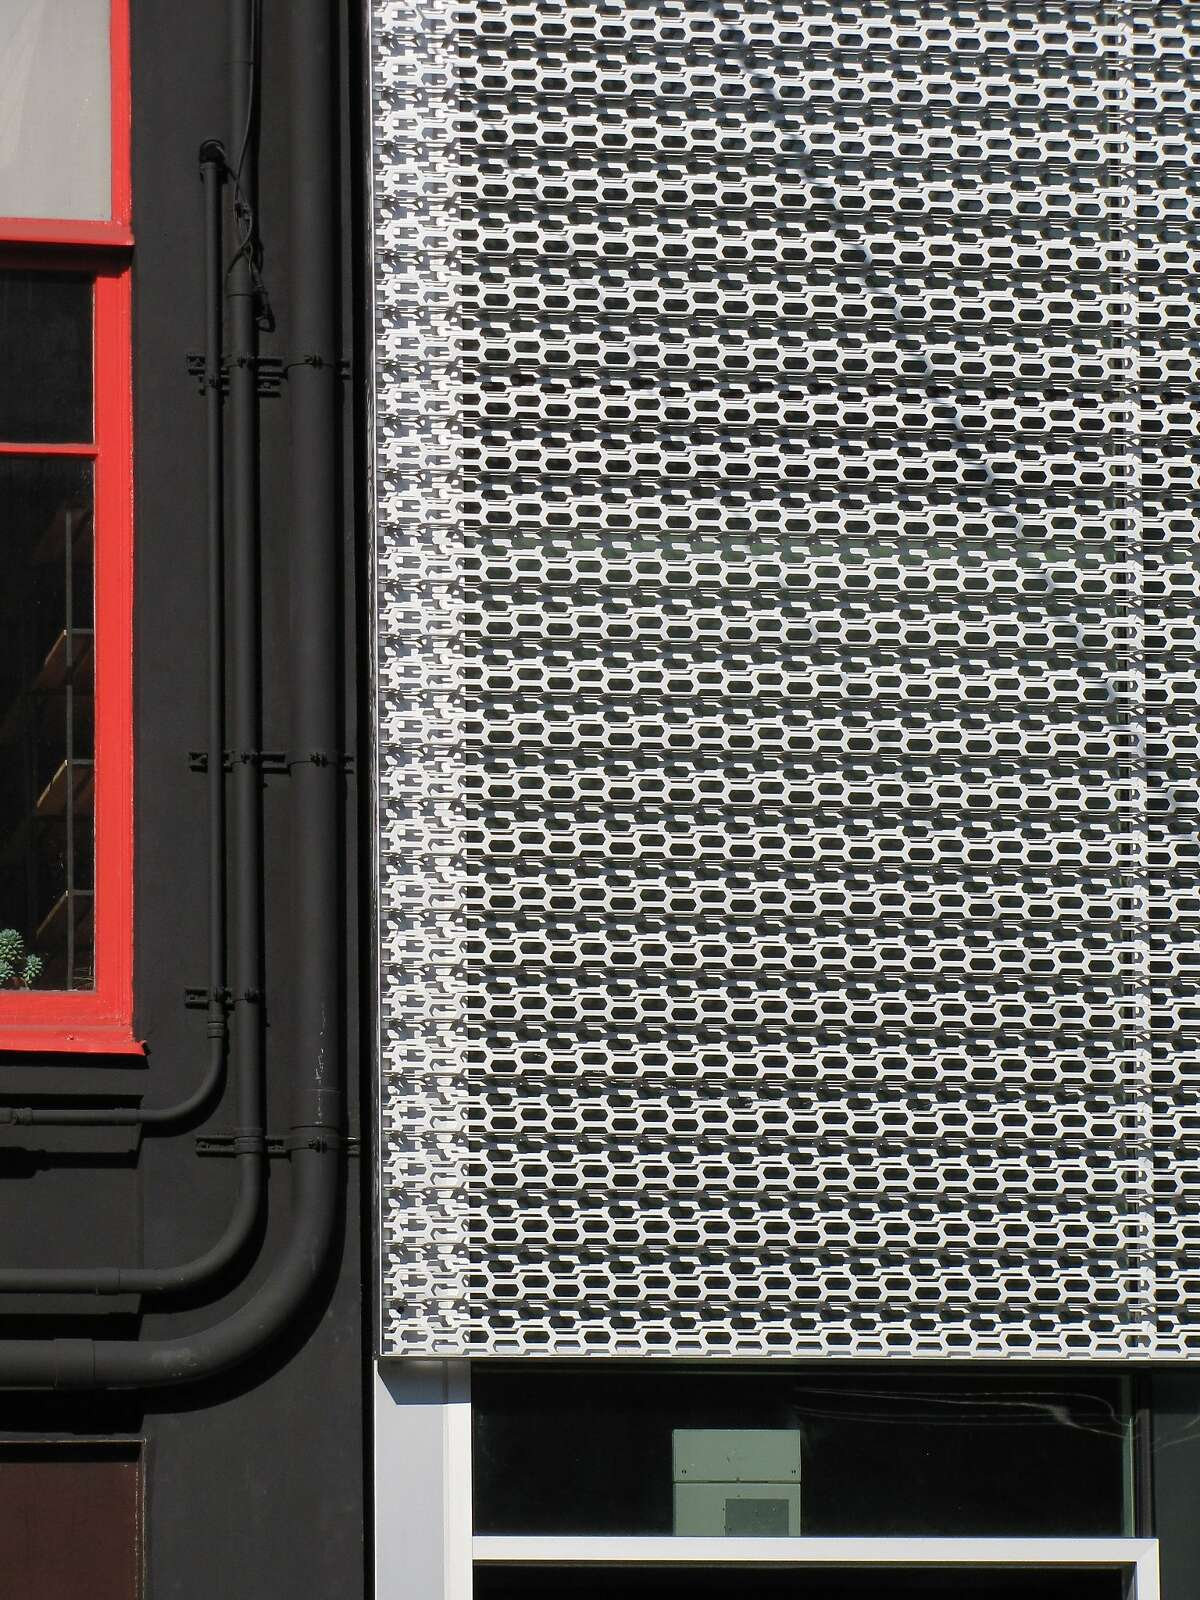 The new commercial building at 482 Bryant St. is set apart from its neighbors by an unusual perforated skin that covers everything above the entrance